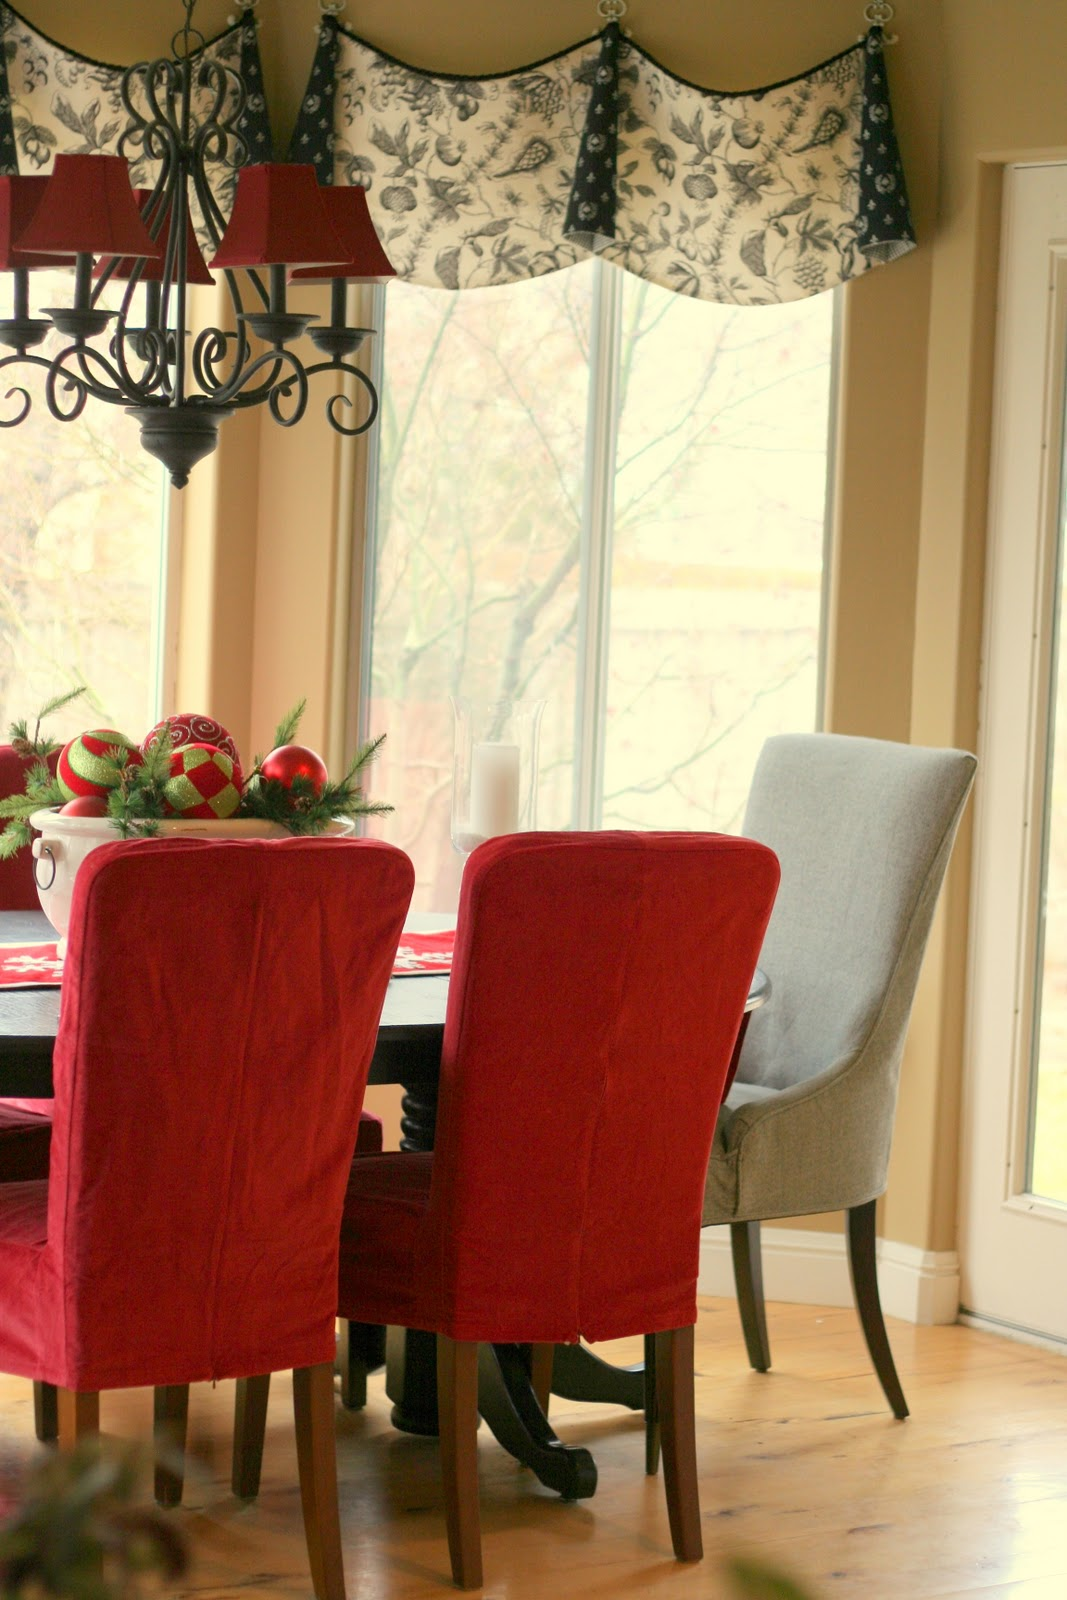 Custom Dining Chair Slipcovers Evenflo Expressions High Replacement Parts By Shelley Menswear Room